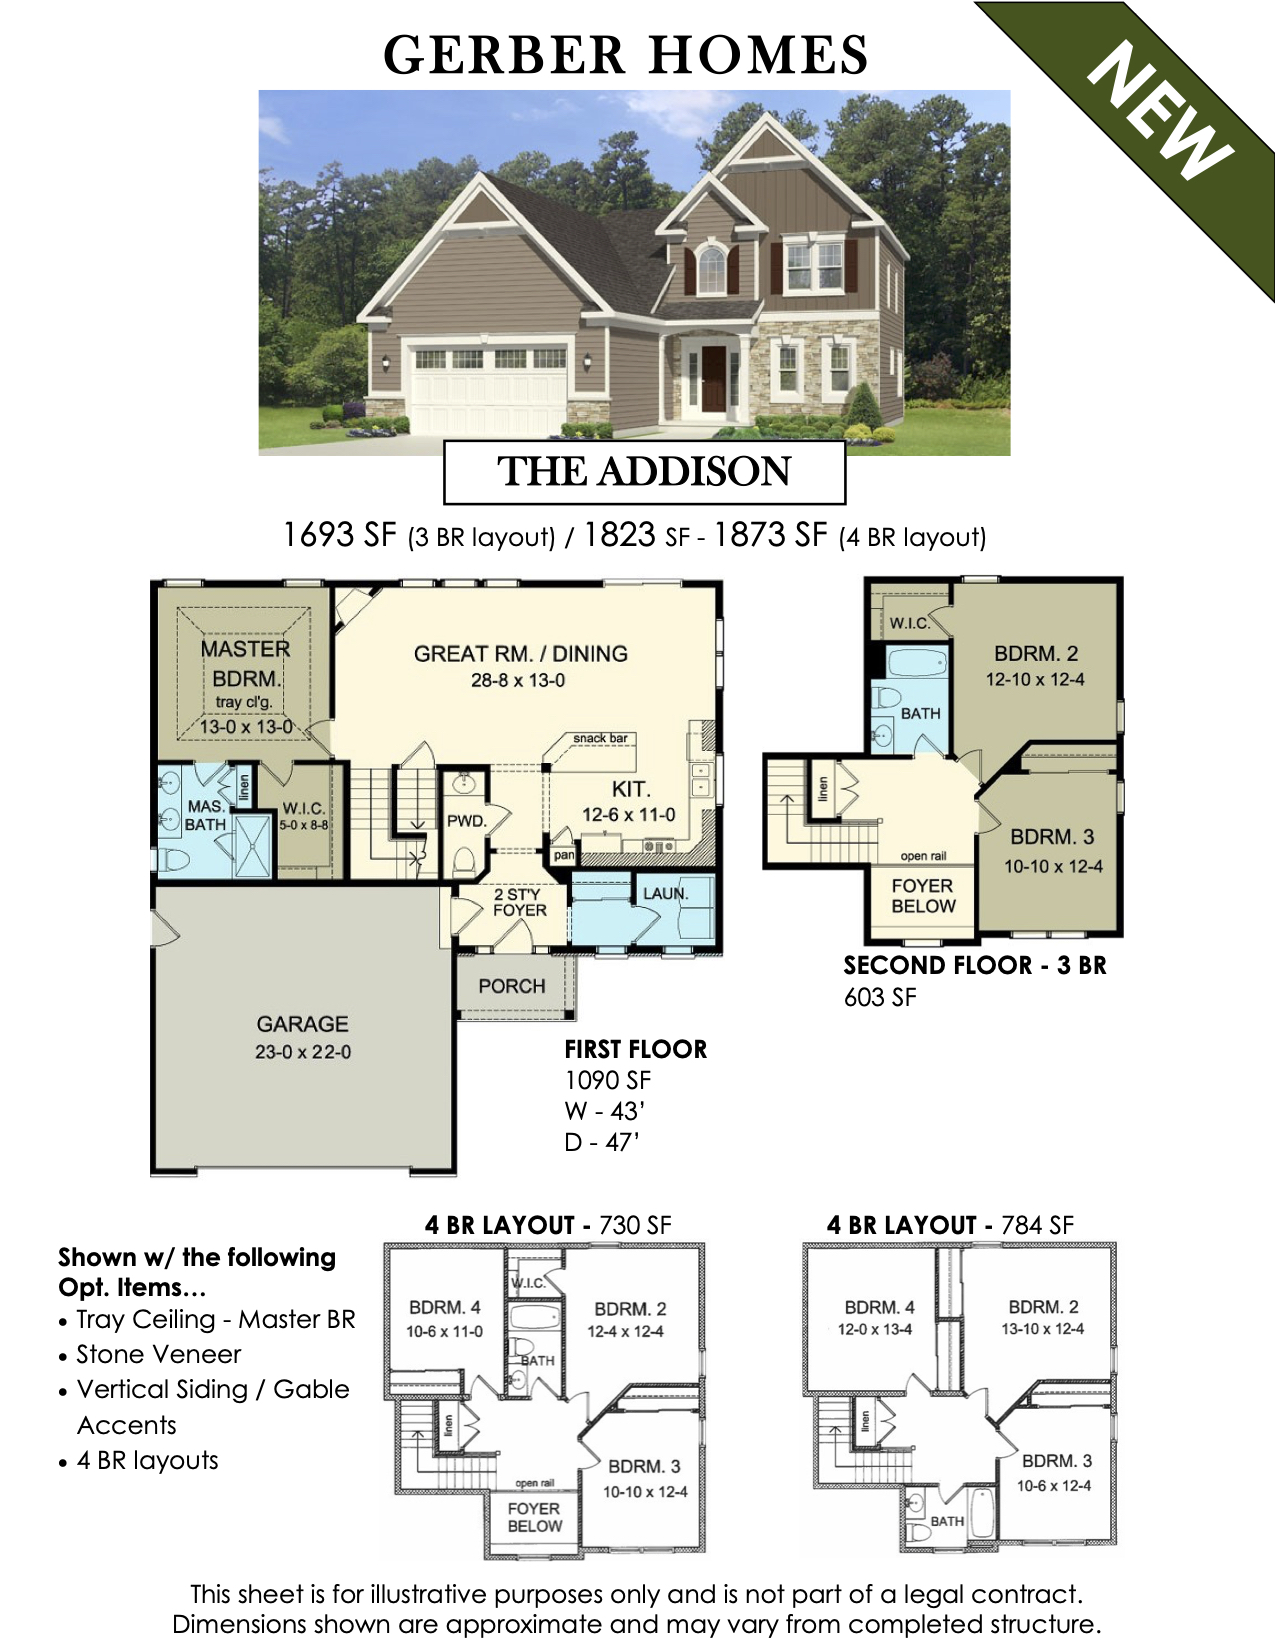 Gerber Homes | Floor Plans | Rochester NY on ranch log home plans, ranch home lighting, luxury home plans, ranch home addition plans, ranch homes with porches, ranch home pricing, ranch home sketches, ranch style homes, ranch home basement plans, house plans, large ranch home plans, ranch home building kits, ranch home interiors, ranch home doors, ranch home with basement, ranch home design plans, ranch home history, ranch home bedrooms, ranch home architecture, ranch home elevations,